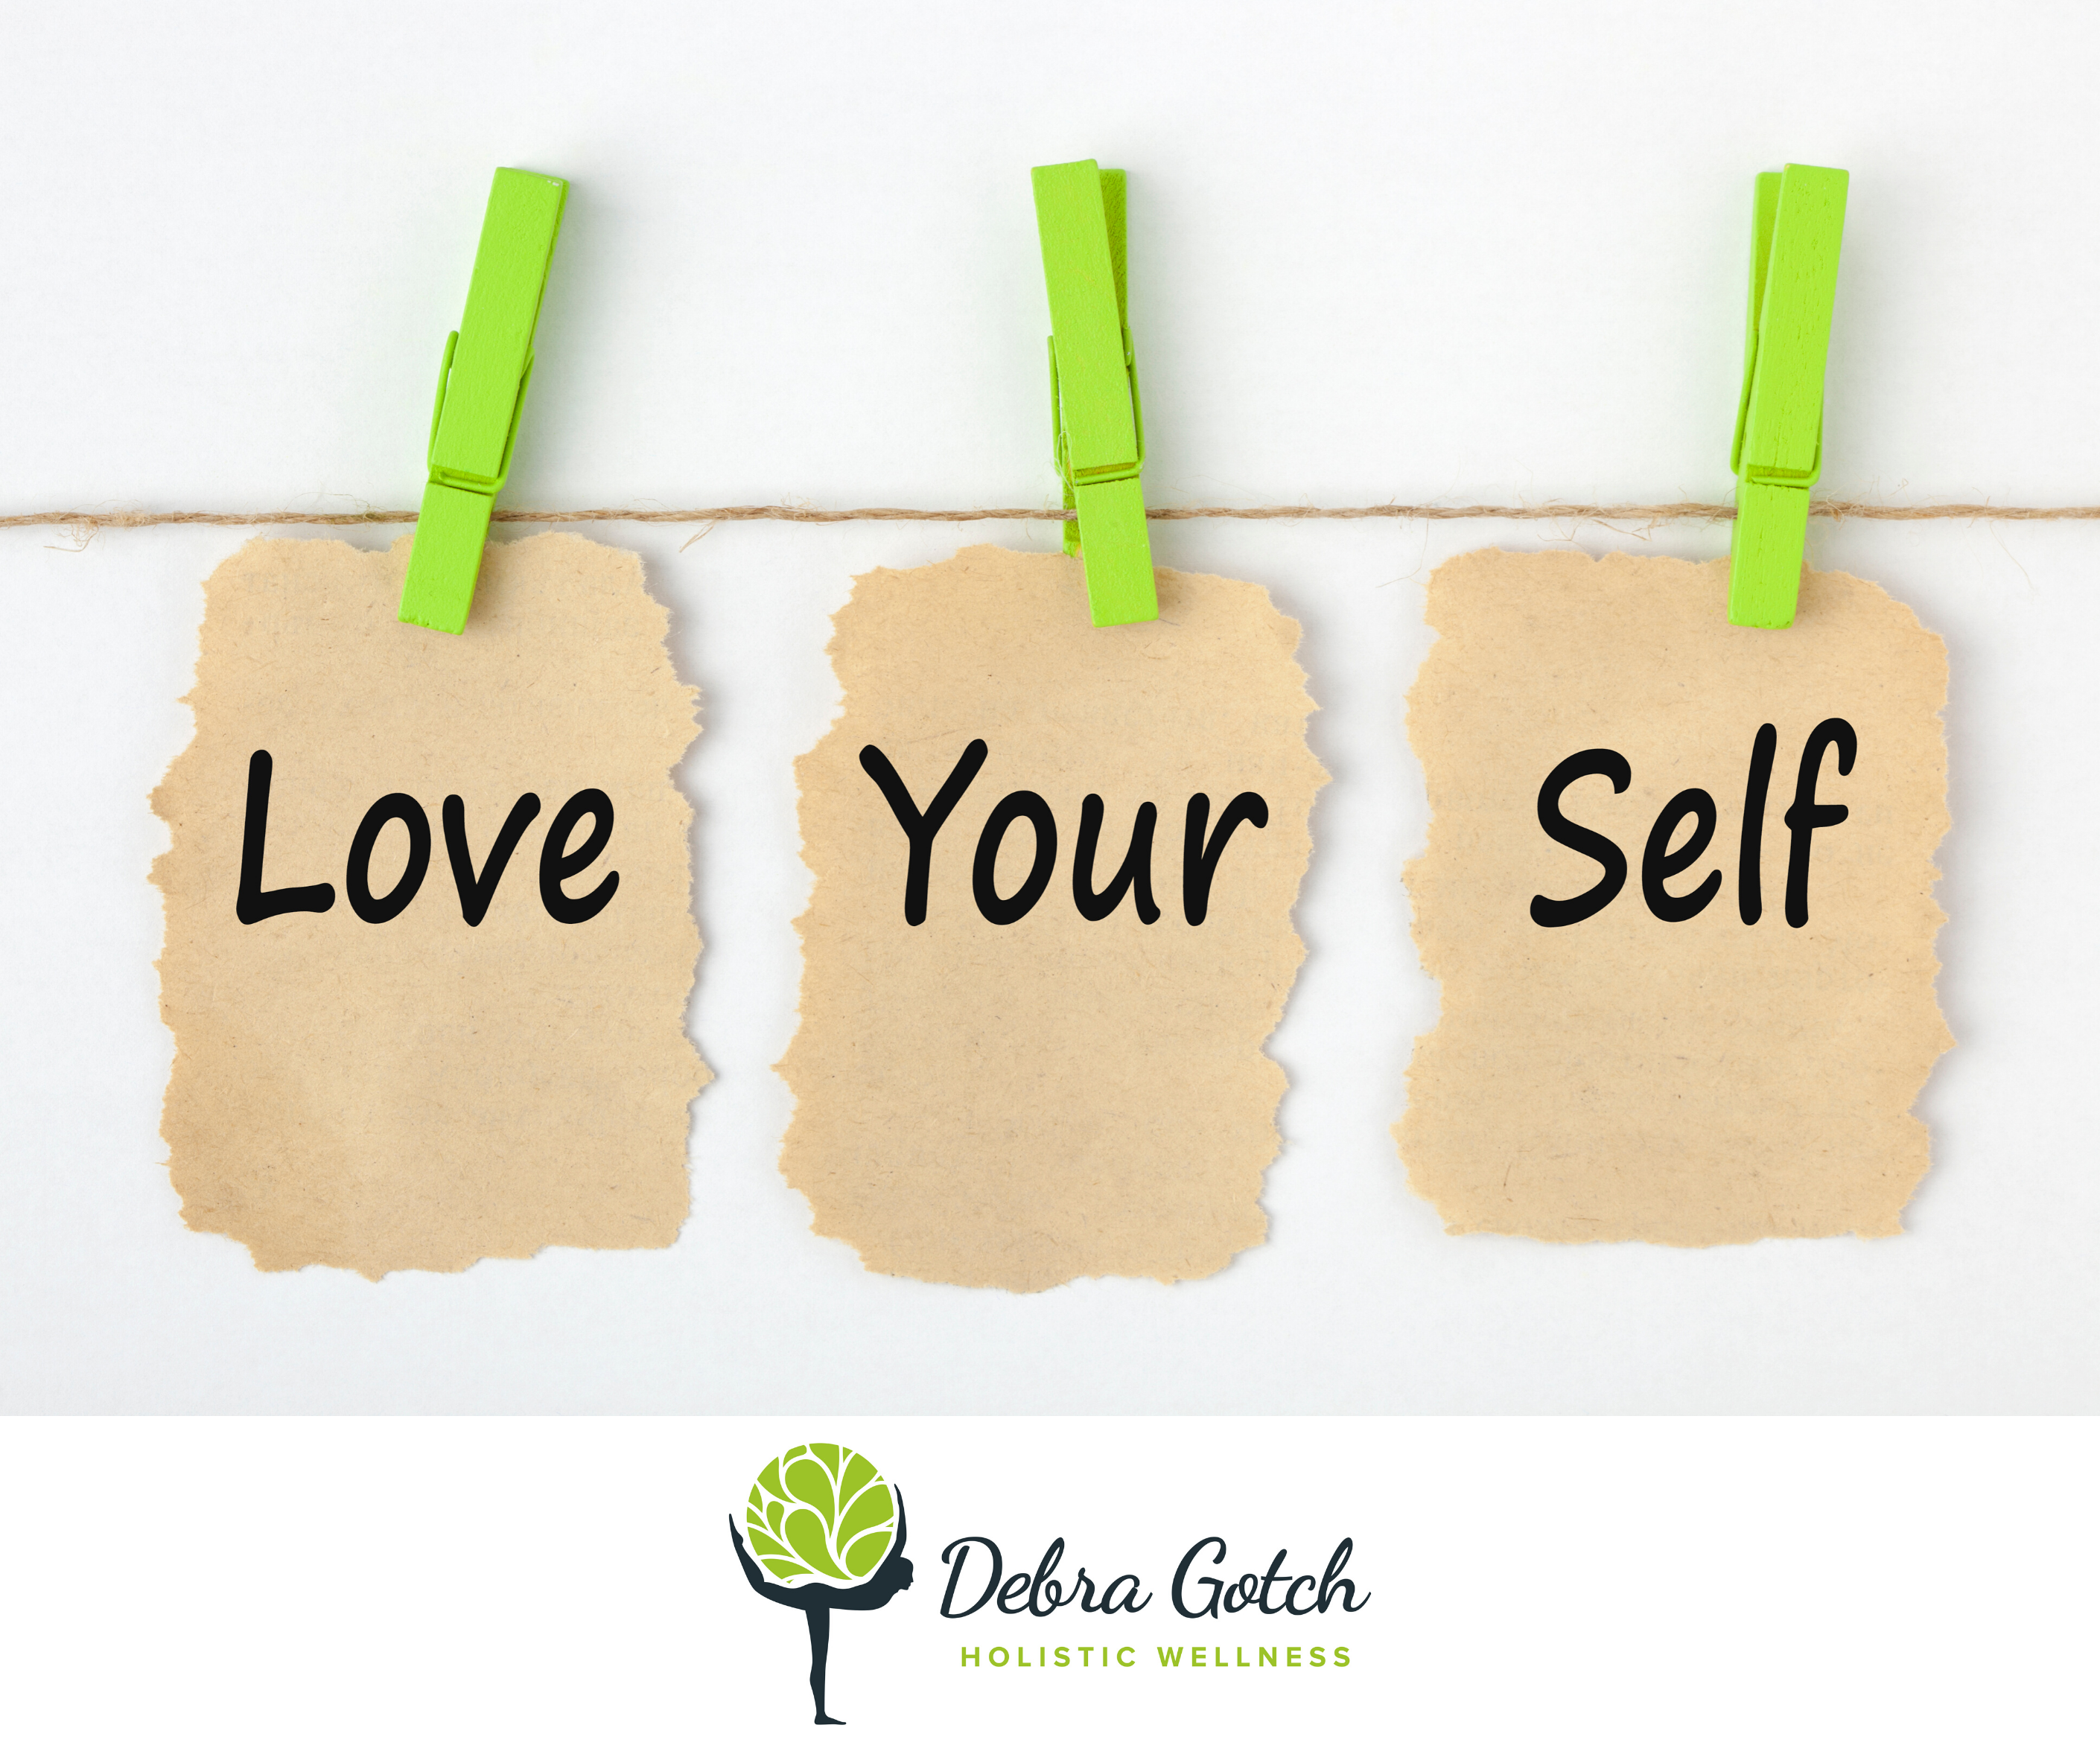 '5 Essential Self-Love Habits for the Ambitious Business Women' with Debra Gotch